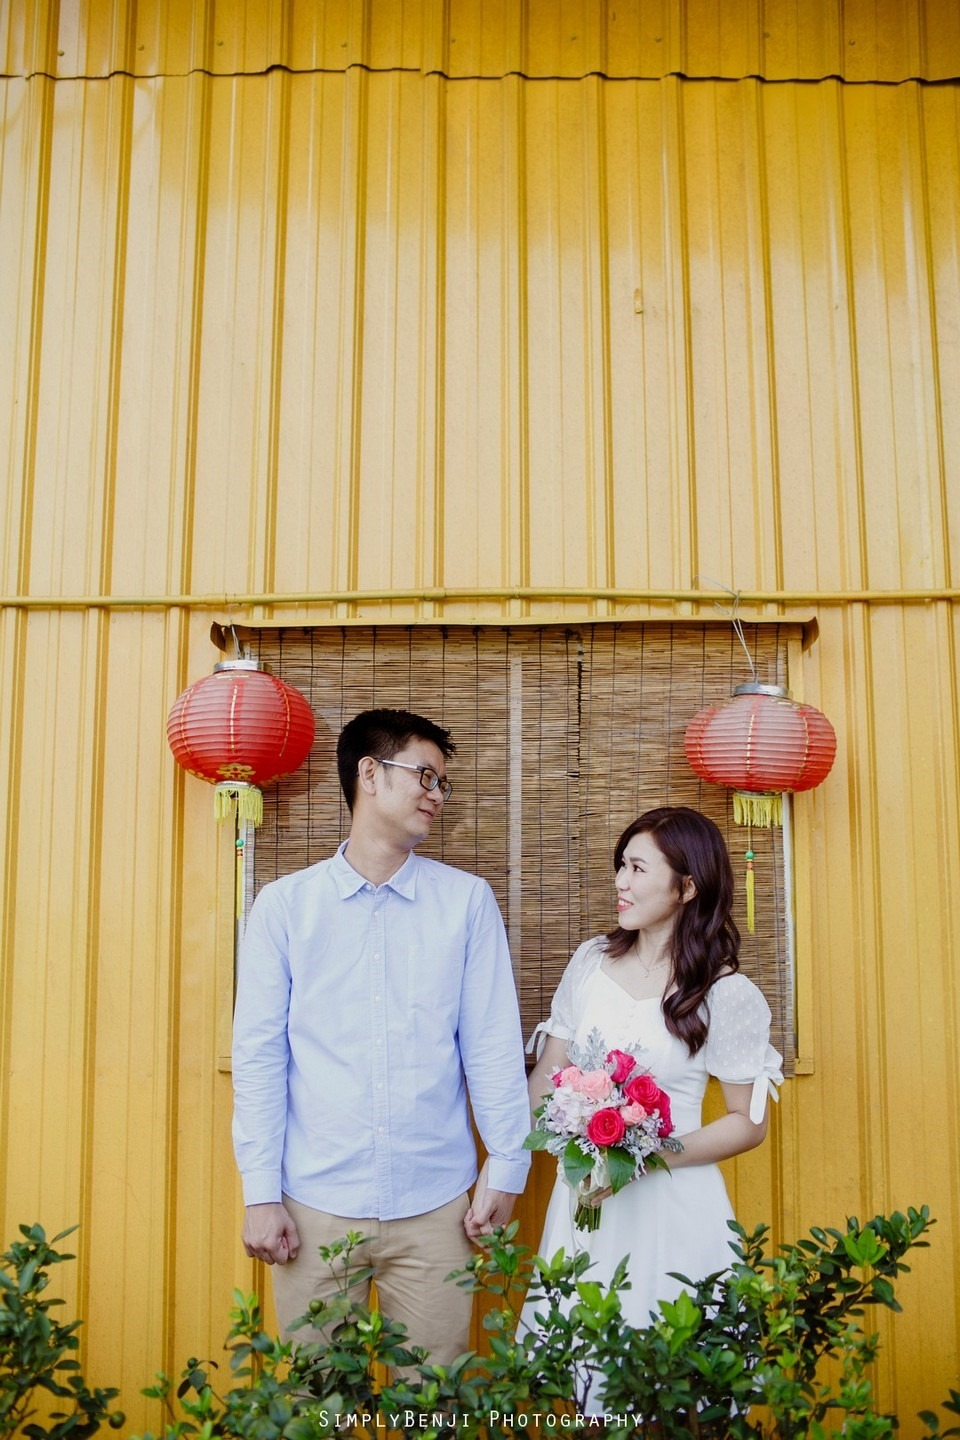 ROM Thean Hou Temple Engagement Portrait _KL Wedding Photographer Malaysia_002